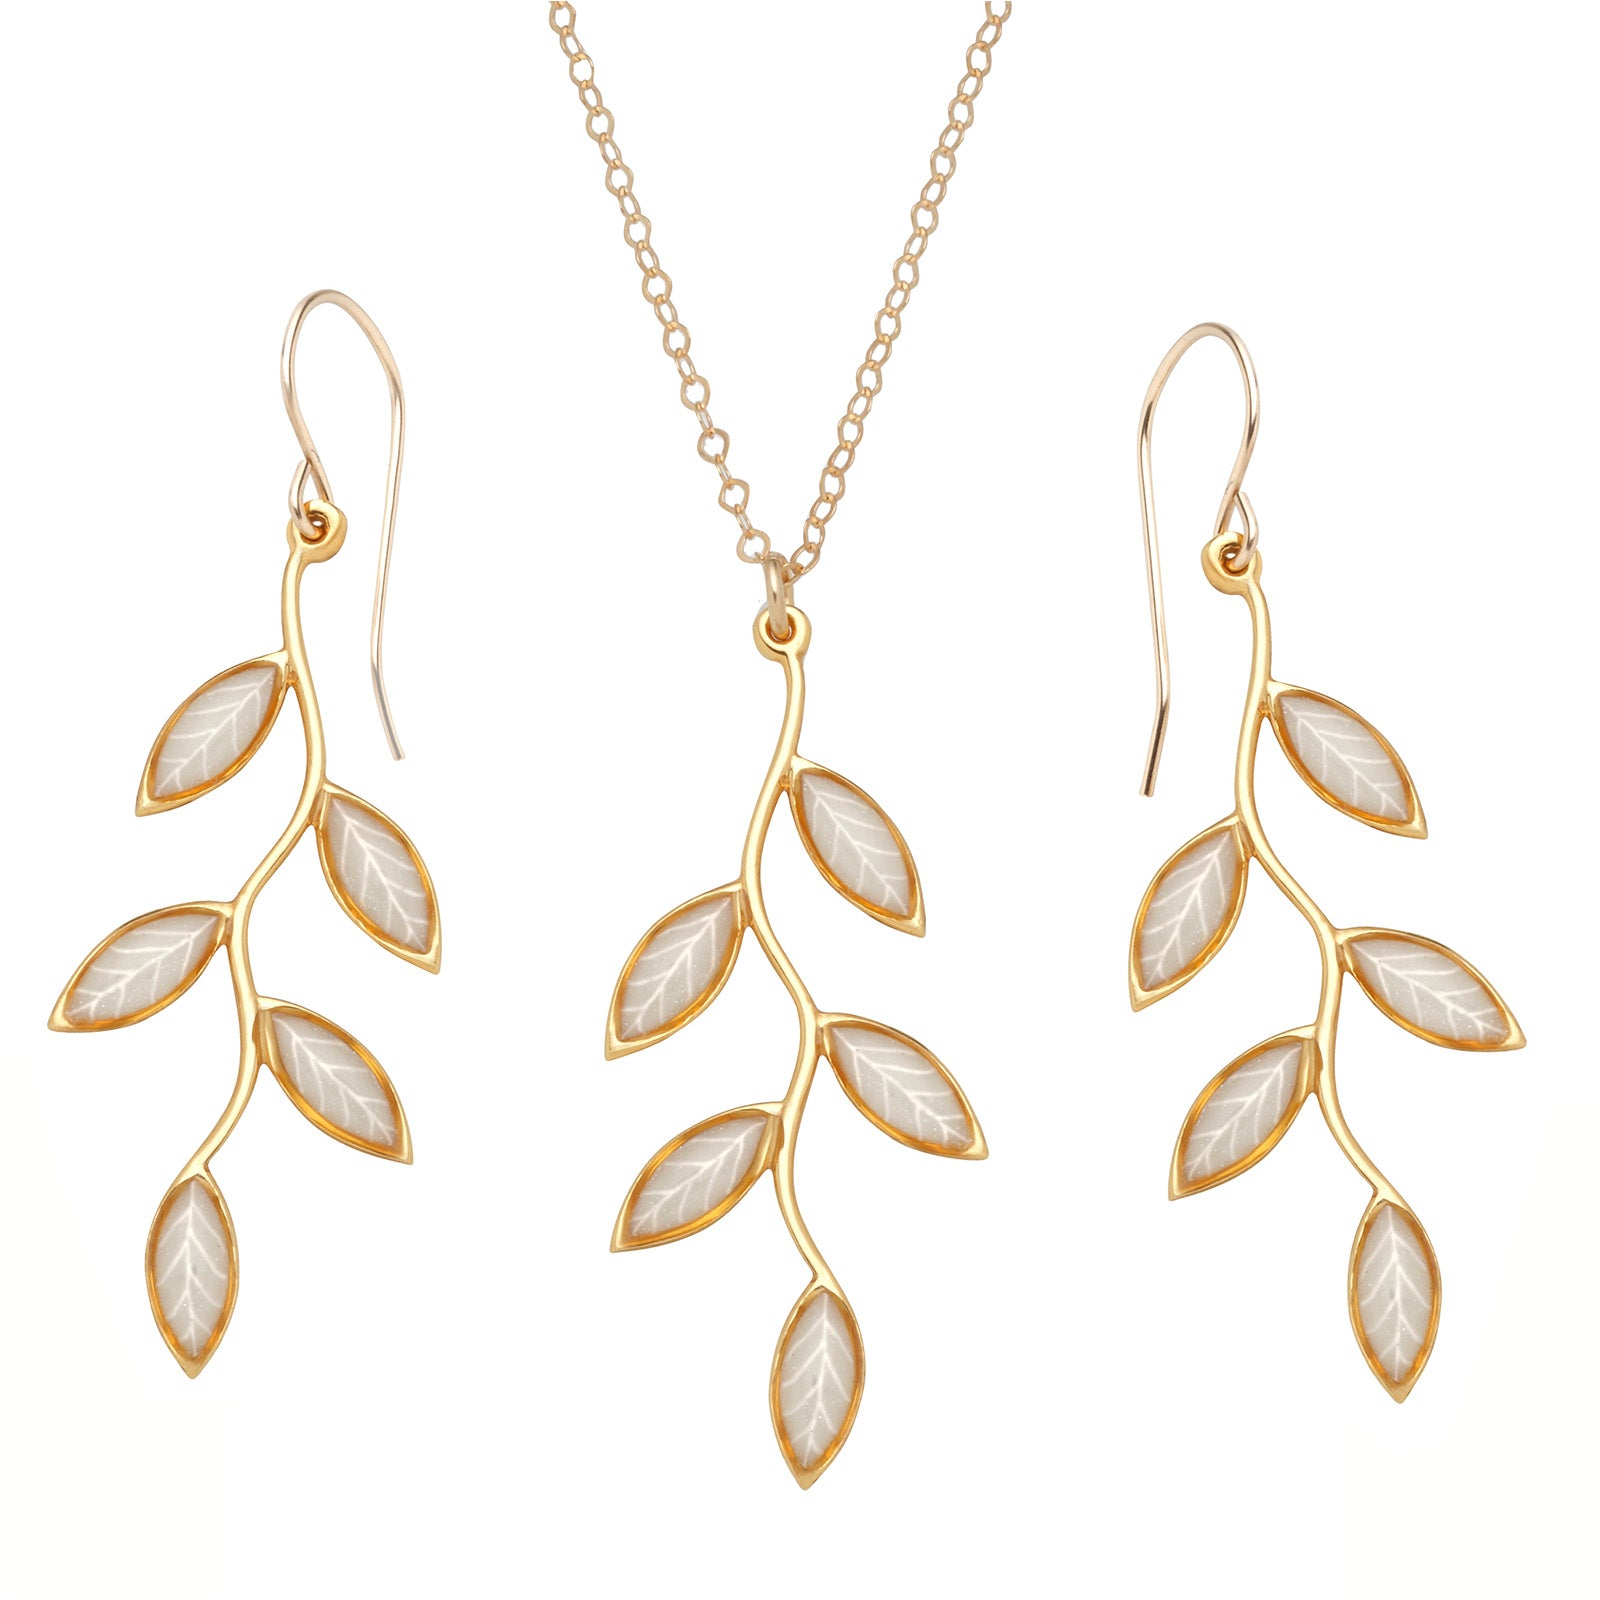 Gold plated 925 silver olive leaf jewelry set handmade necklace and gold plated 925 silver olive leaf jewelry set handmade necklace and earrings nanostyle jewelry aloadofball Image collections